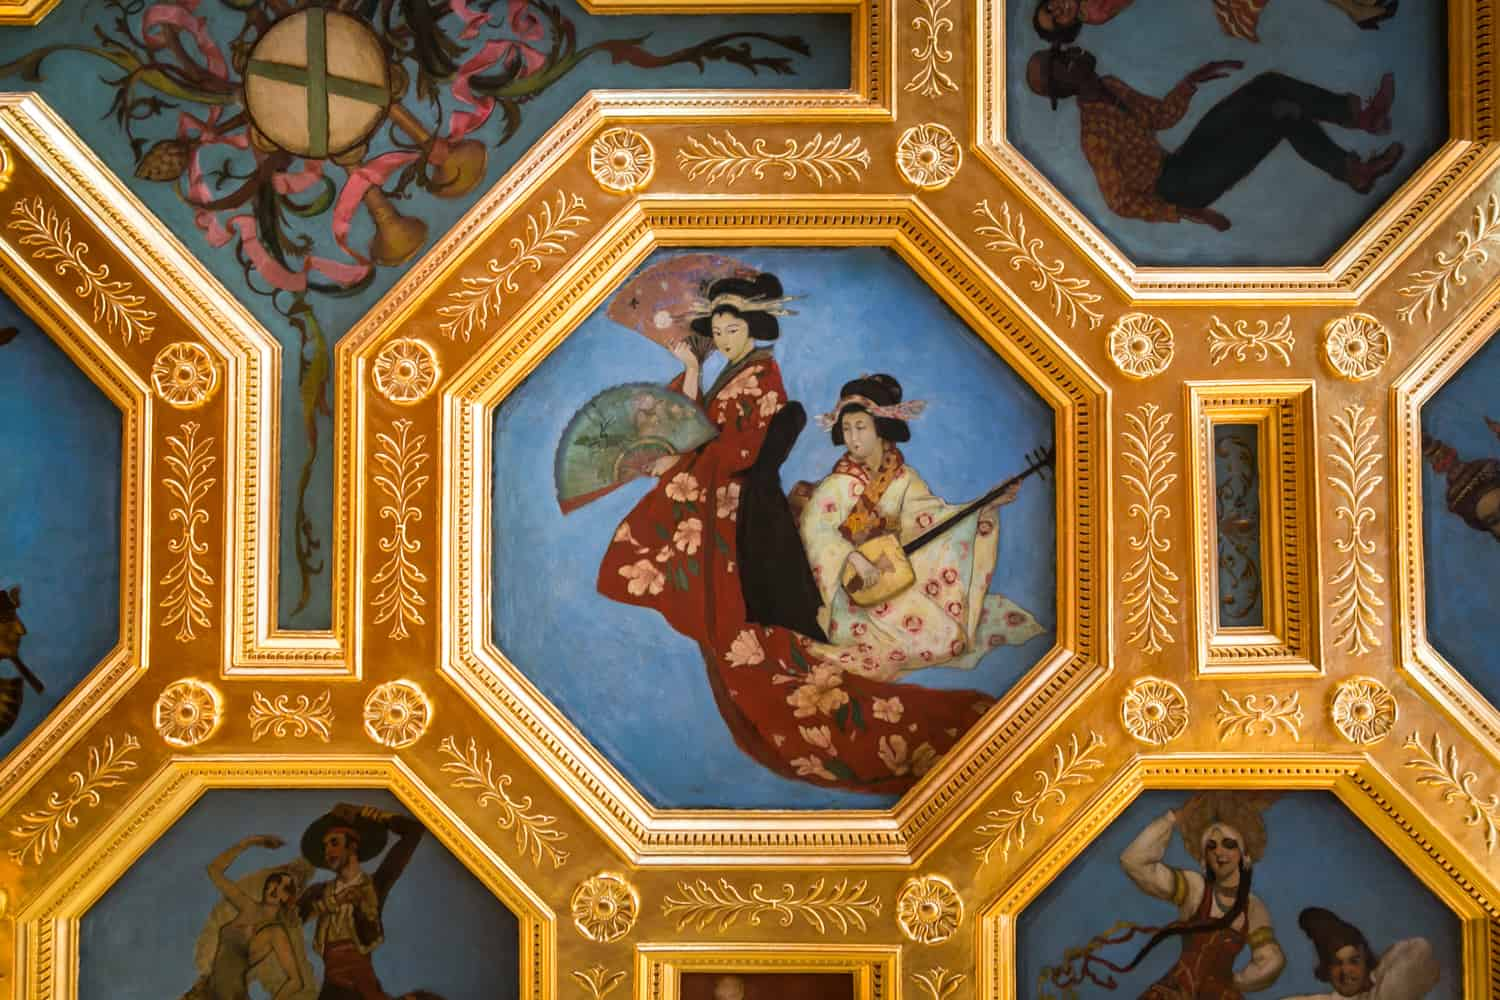 Photos of Sarasota including detail of ceiling at Ca d'Zan